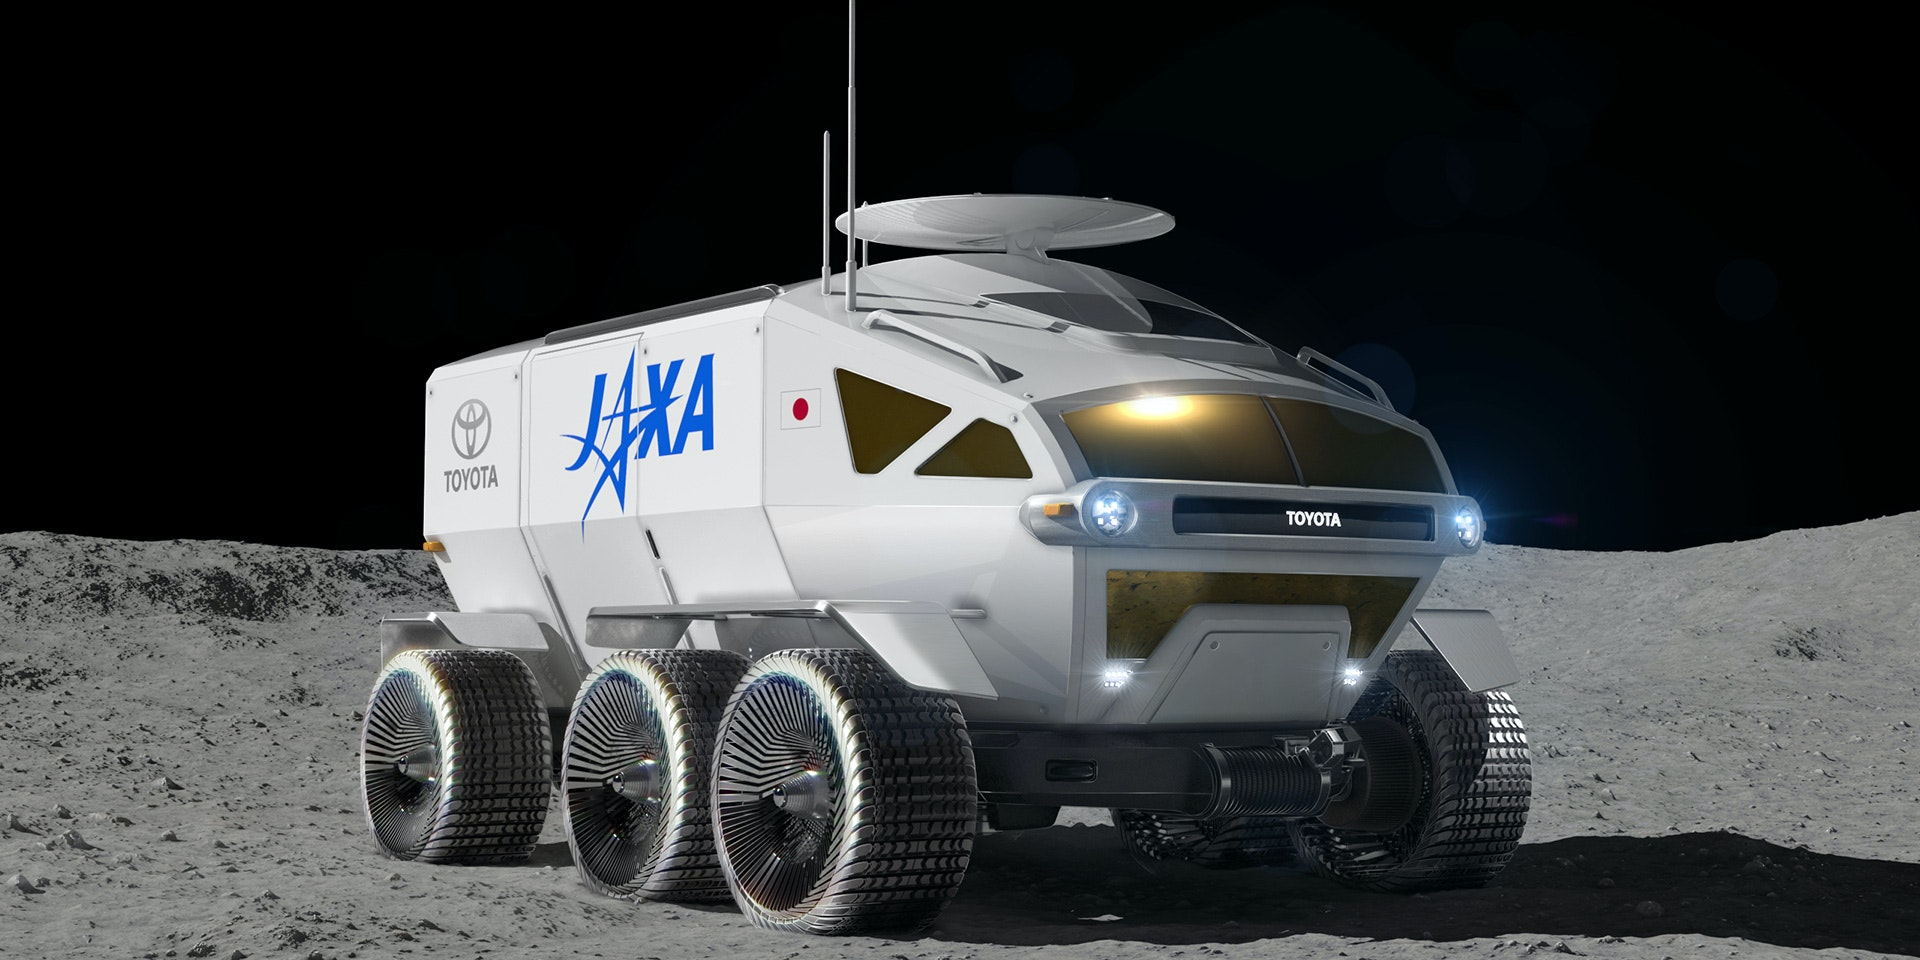 Video Shows Toyota's Planned Moon Rover With 18 Times the Range of Model S